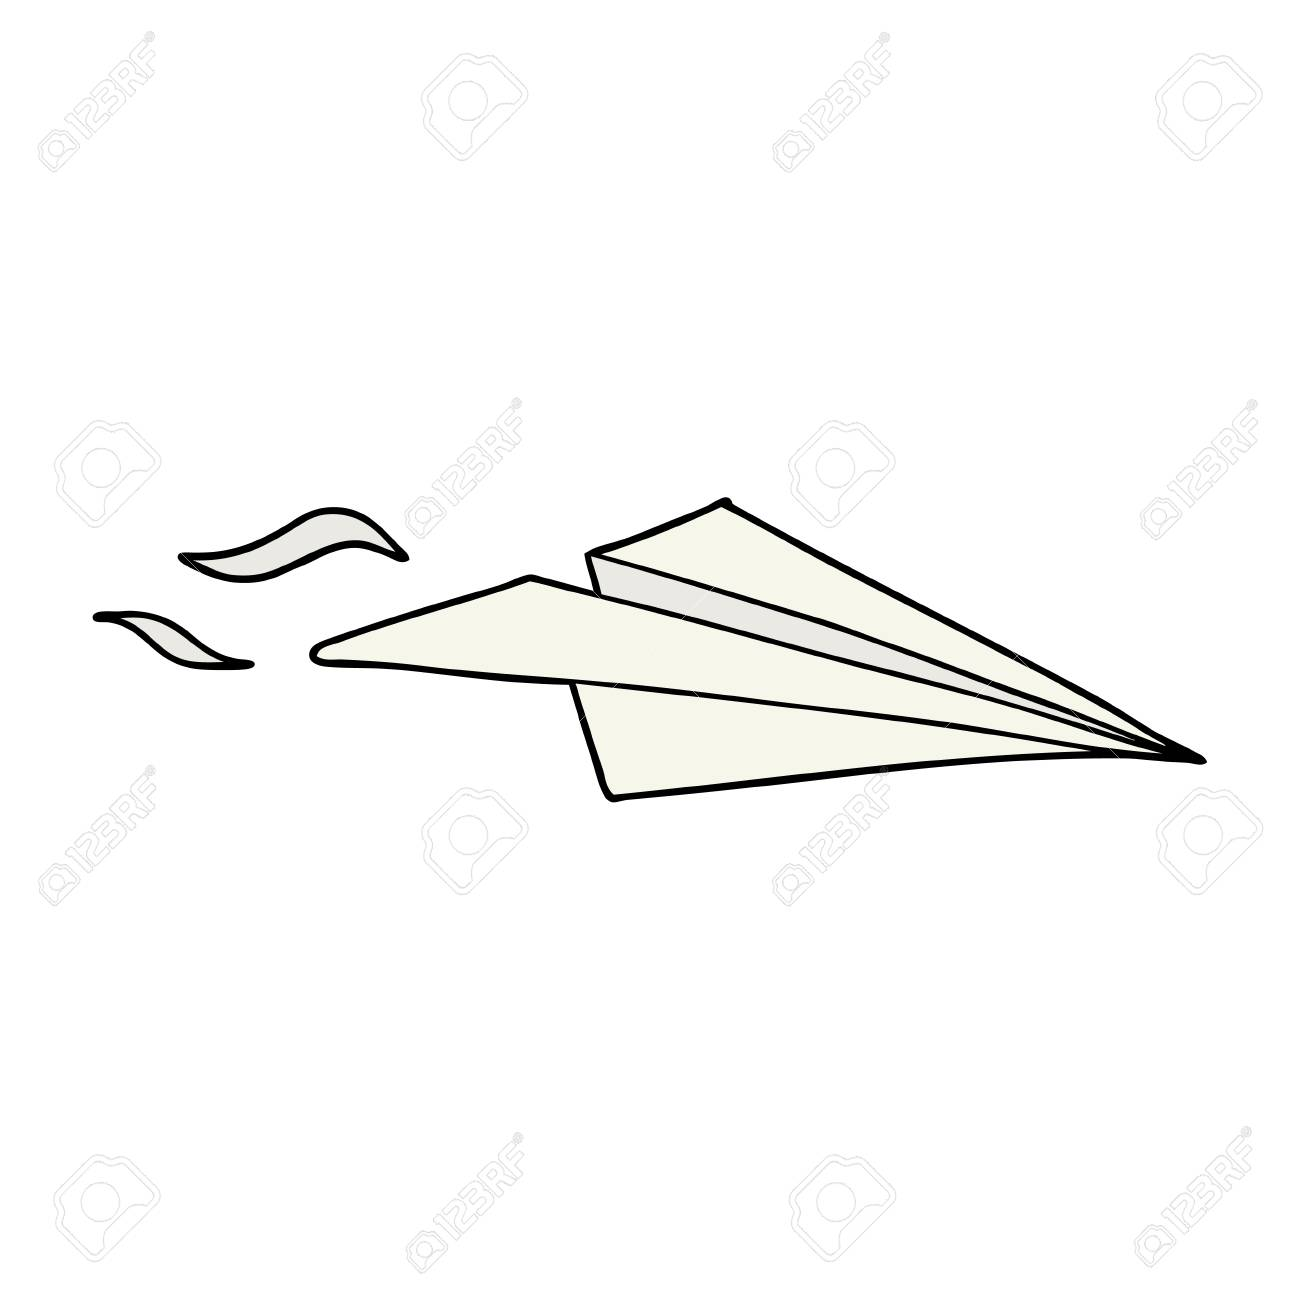 Cartoon Paper Airplane Royalty Free Cliparts Vectors And Stock